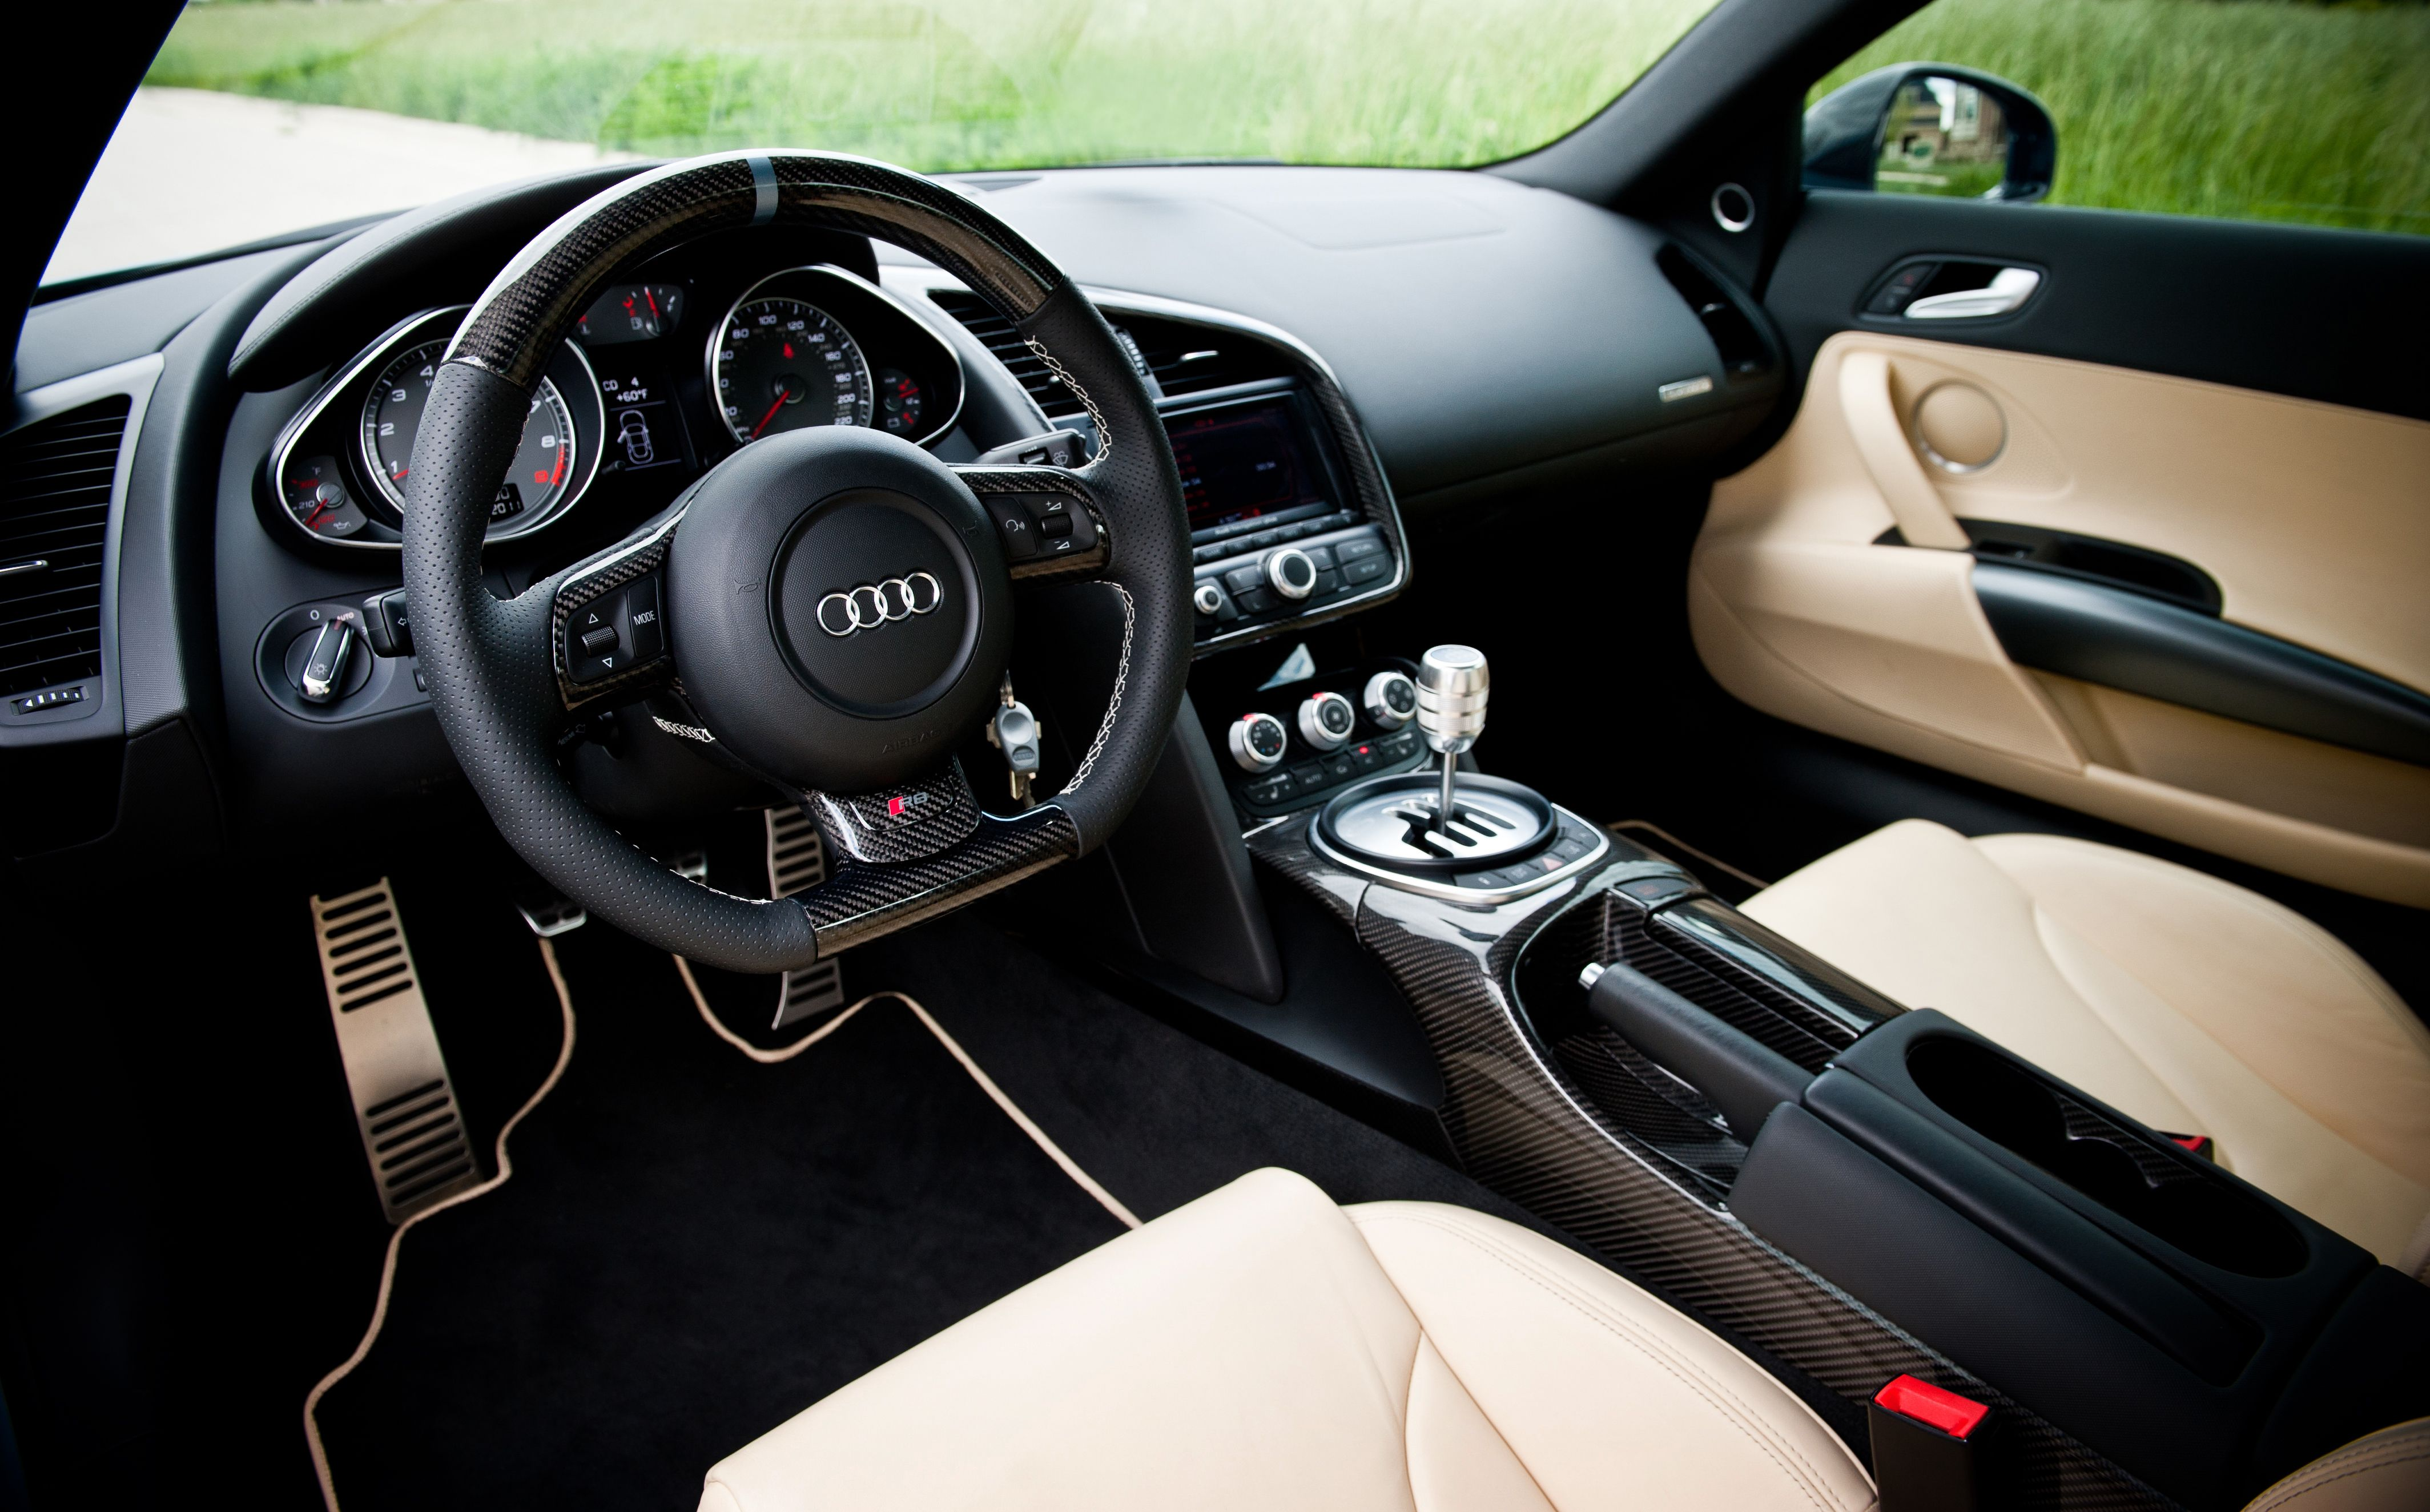 Audi R8 With A Bunch Of Macarbon Interior Parts Including Steering Wheel And Center Console Steering Wheel Audi Car Interior